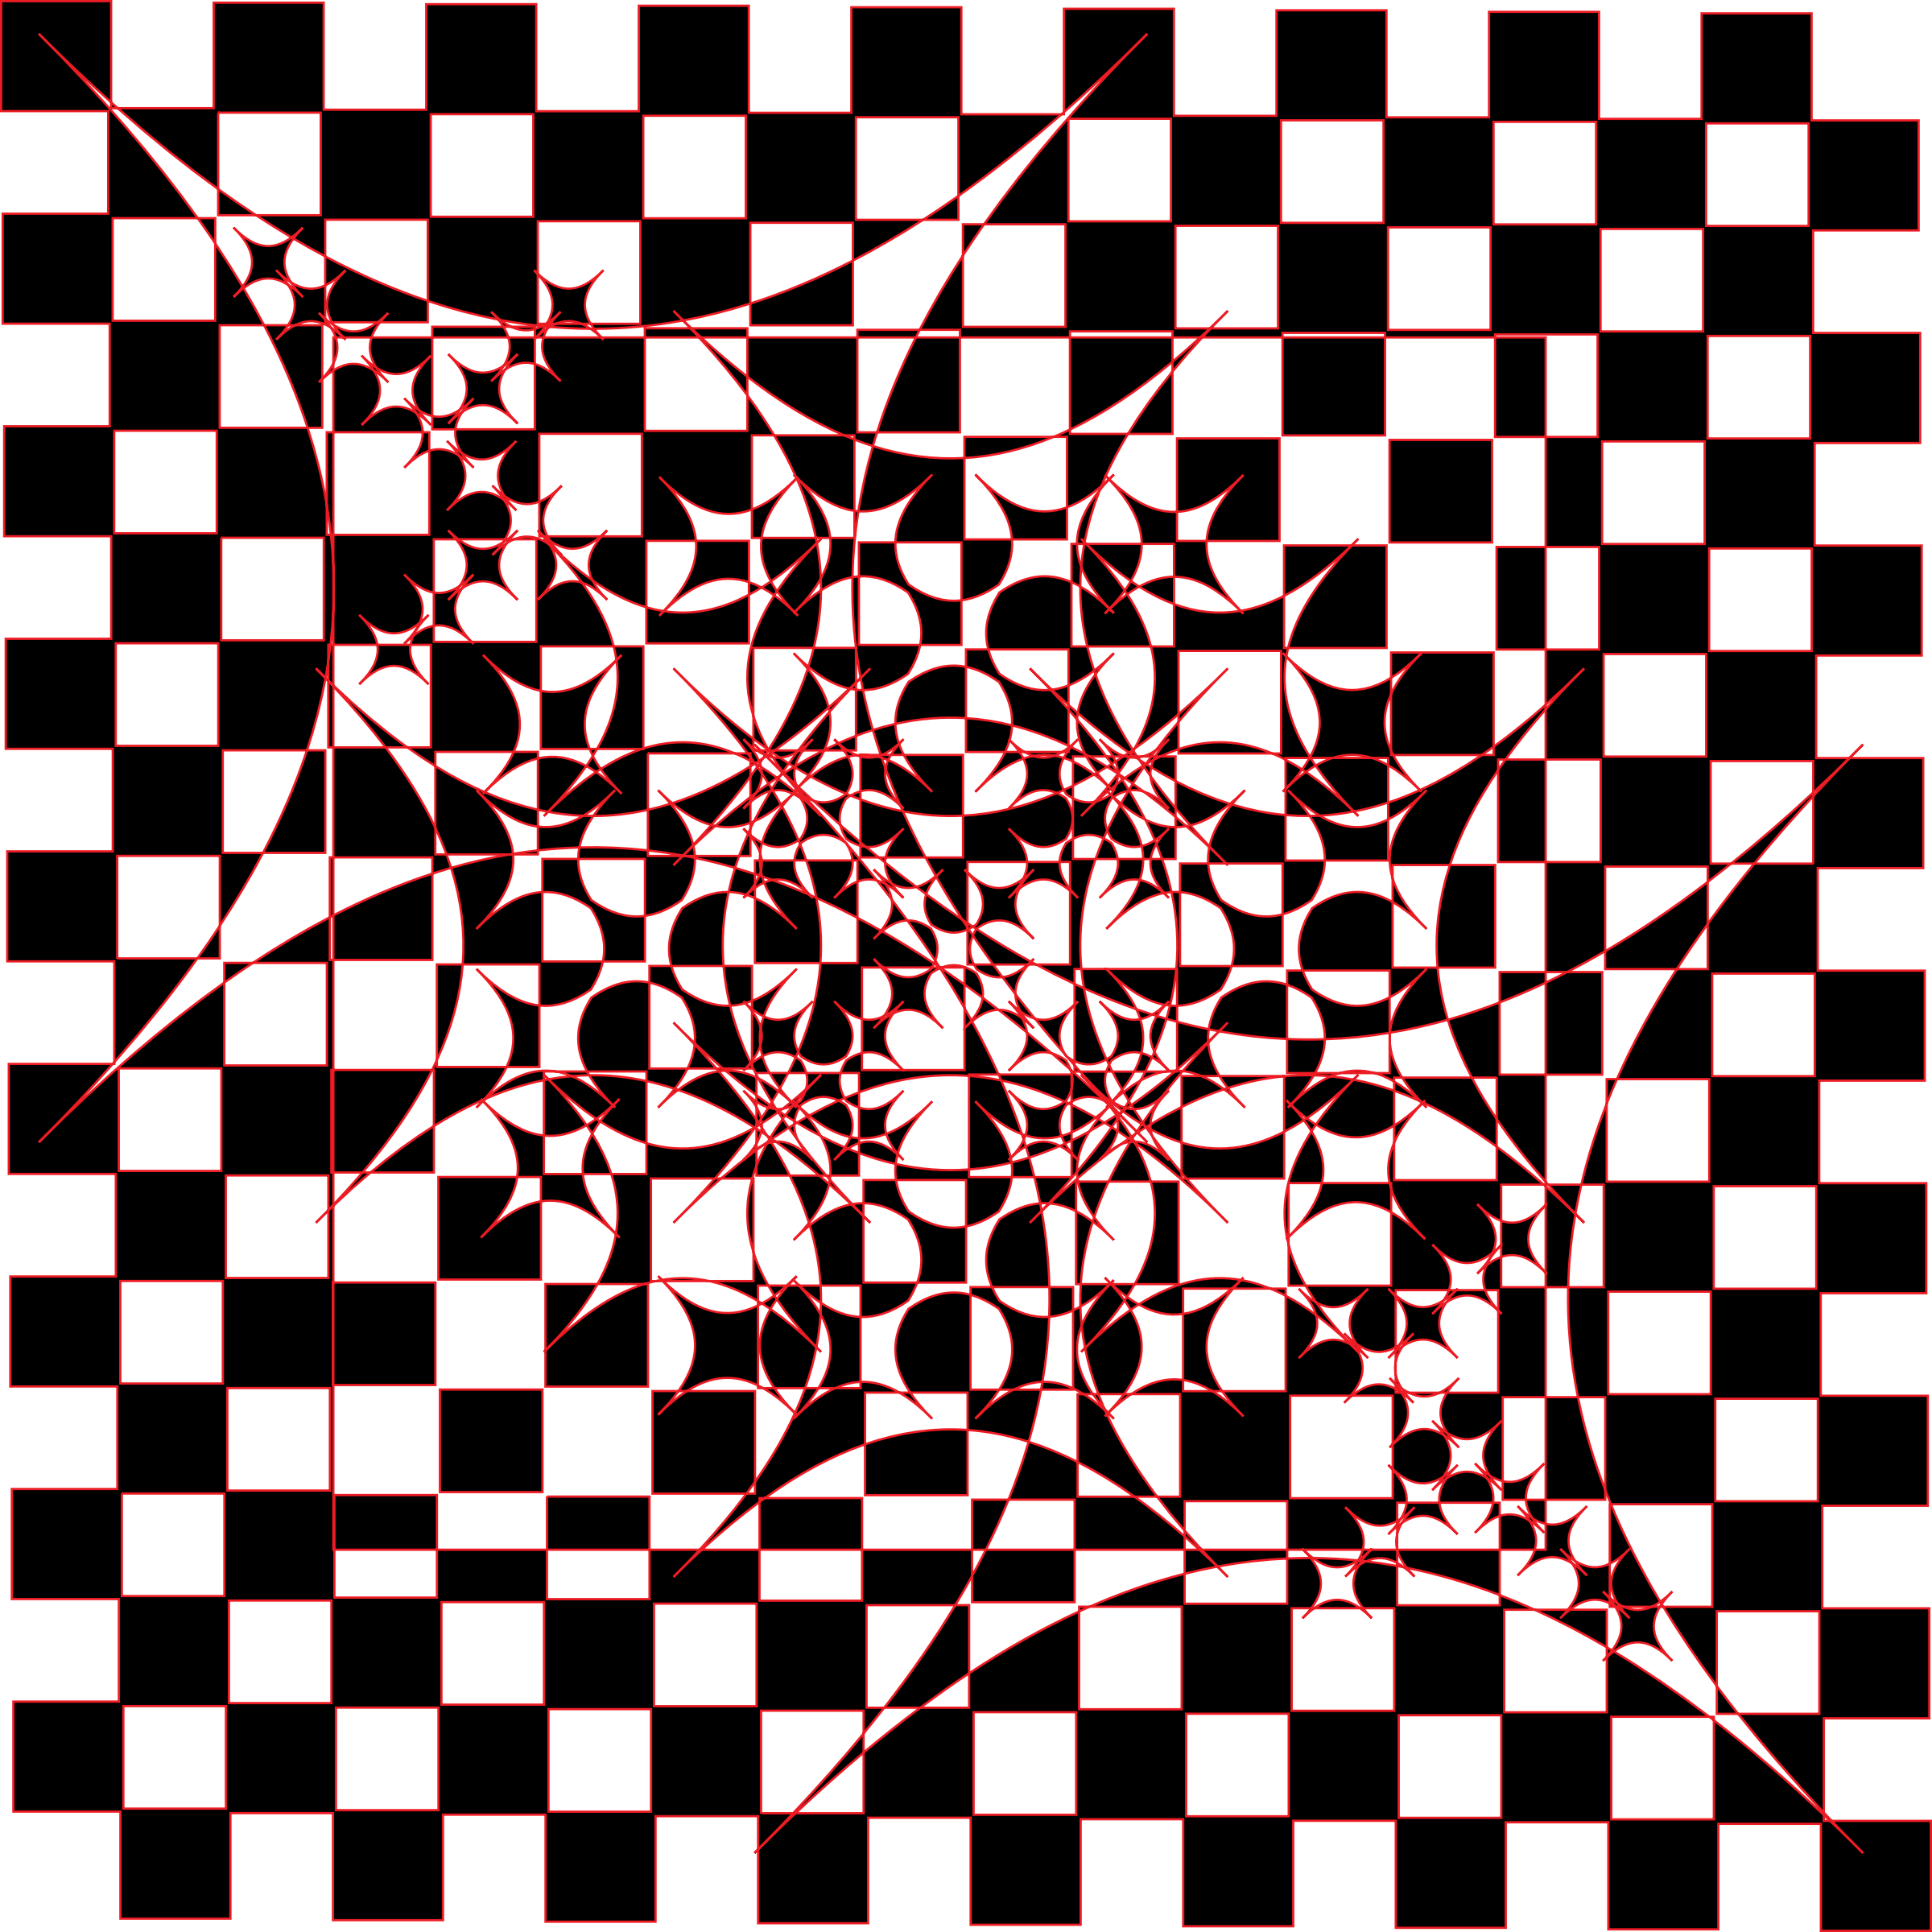 Modern Art Tile Checkered Black and White with Red outlines by dkonz01